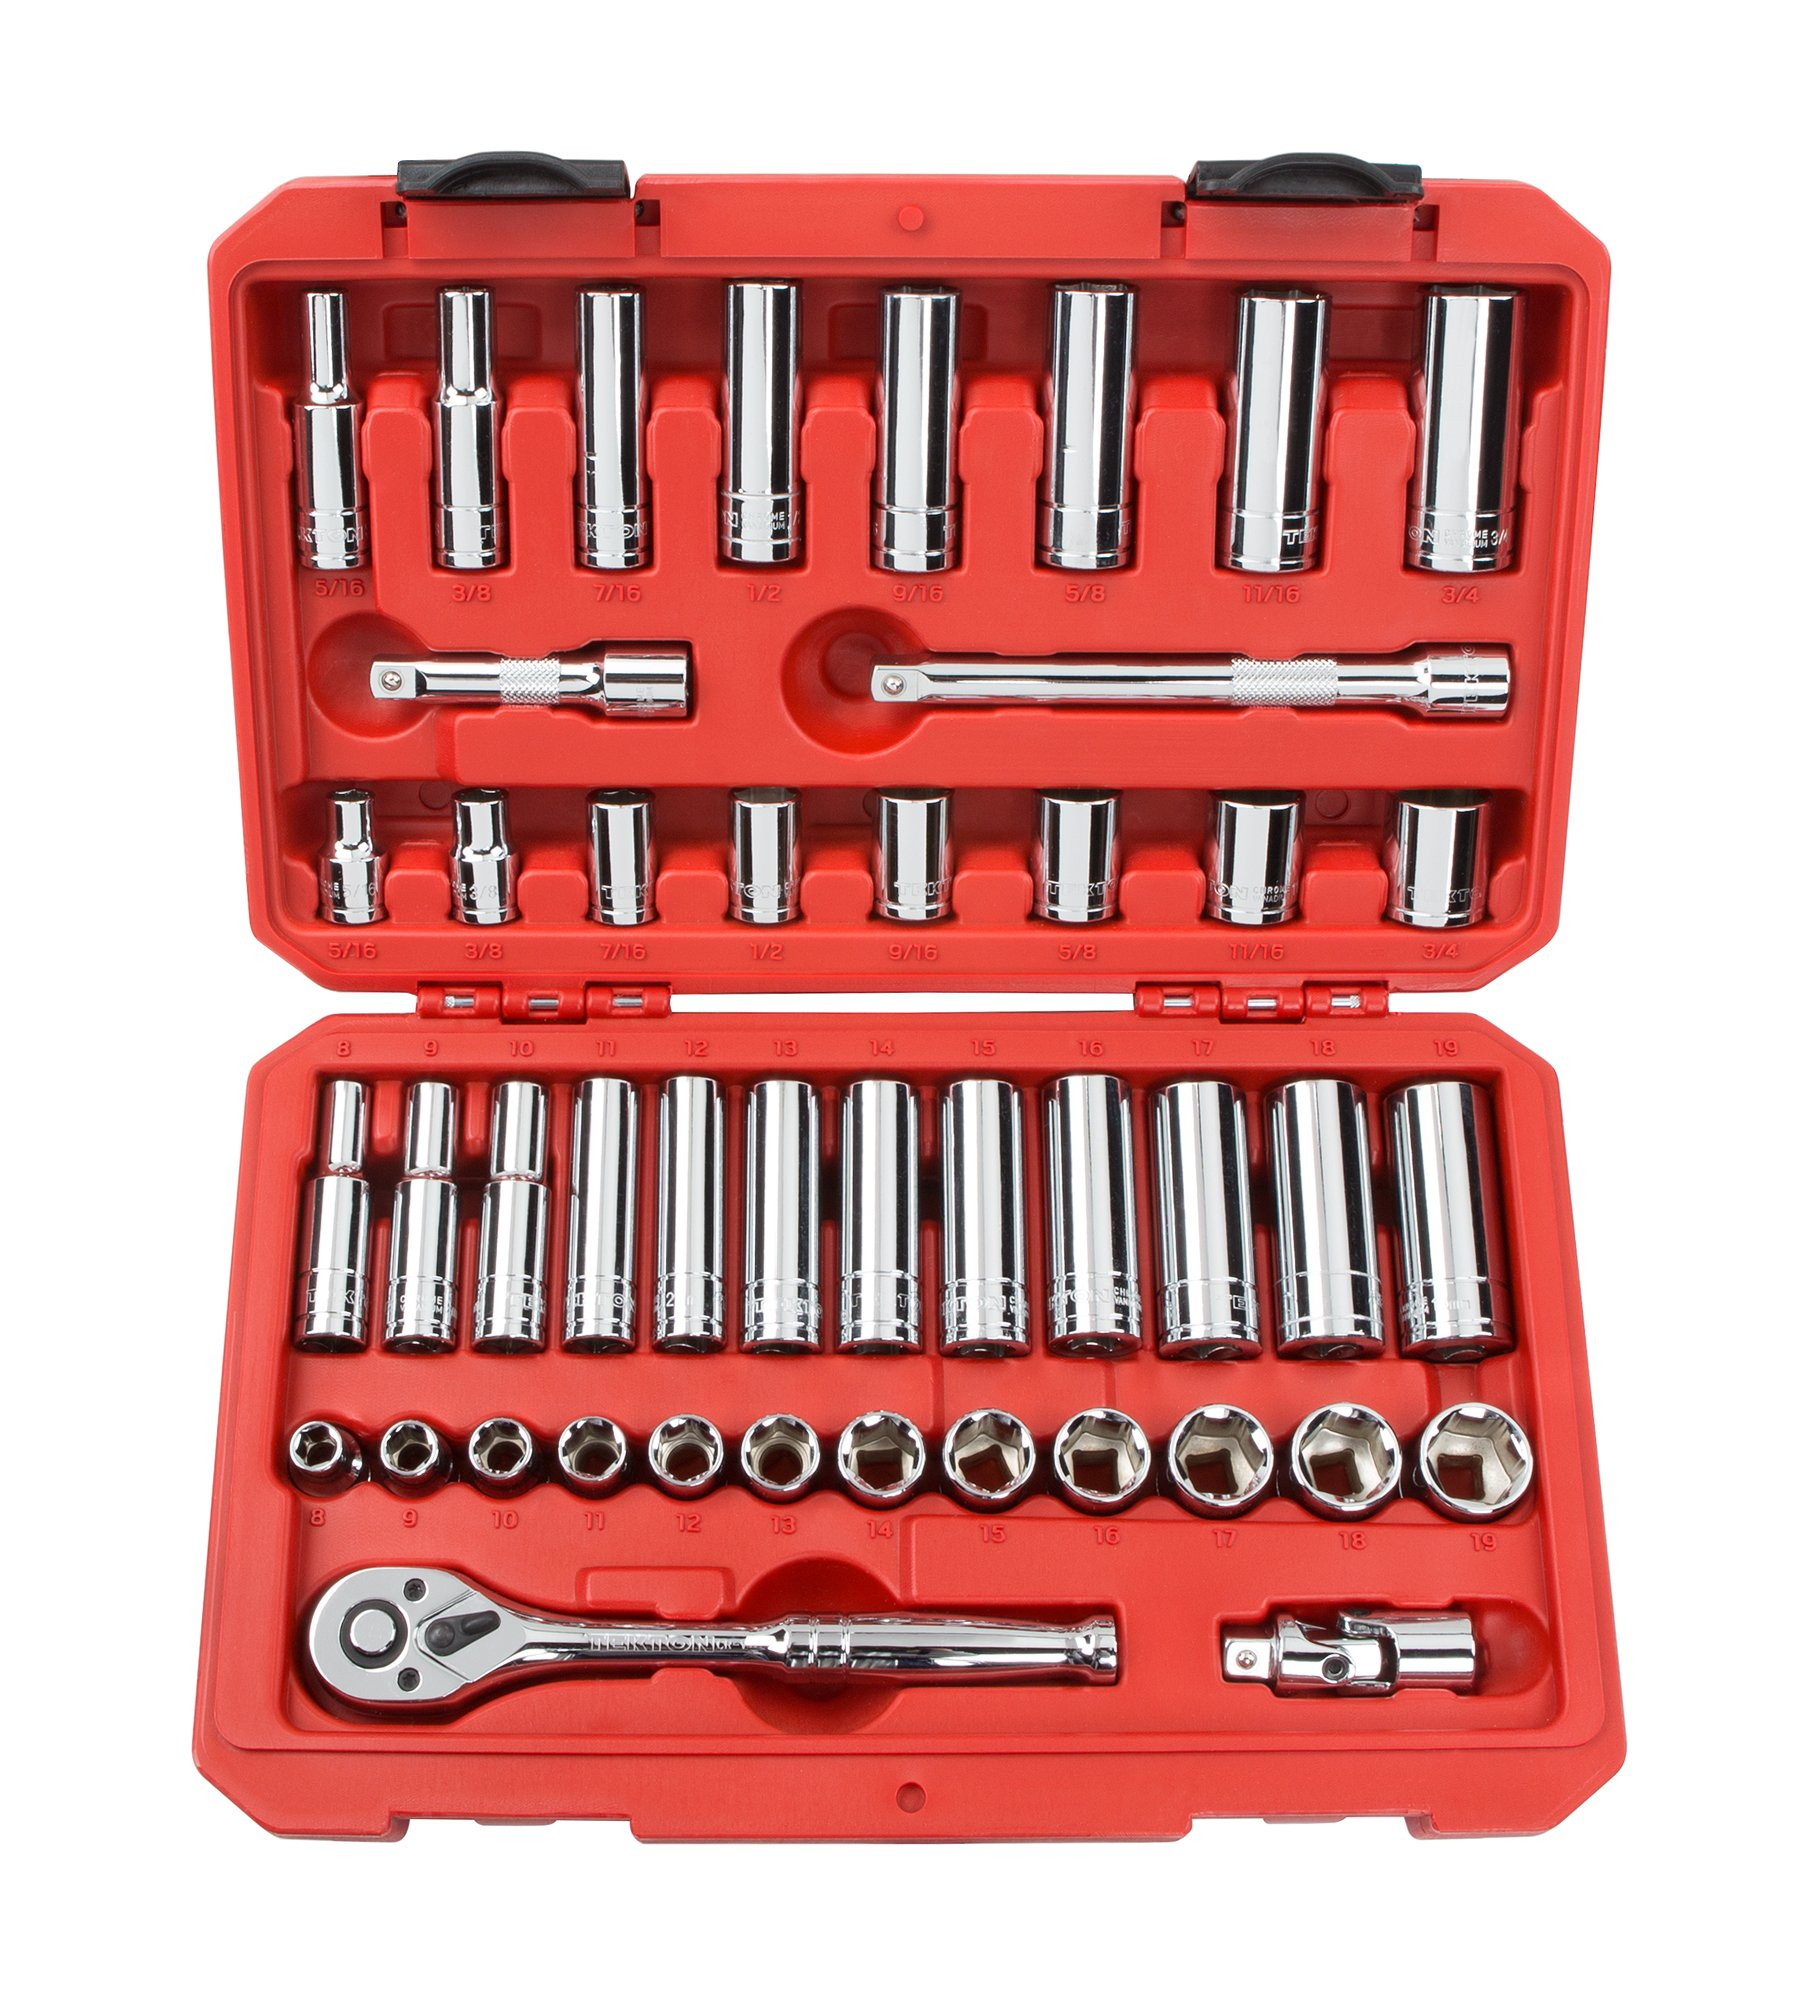 TEKTON 3/8-Inch Drive Socket Set, Inch/Metric, 6-Point, 5/16-Inch - 3/4-Inch, 8 mm - 19 mm, 45-Piece | 13101